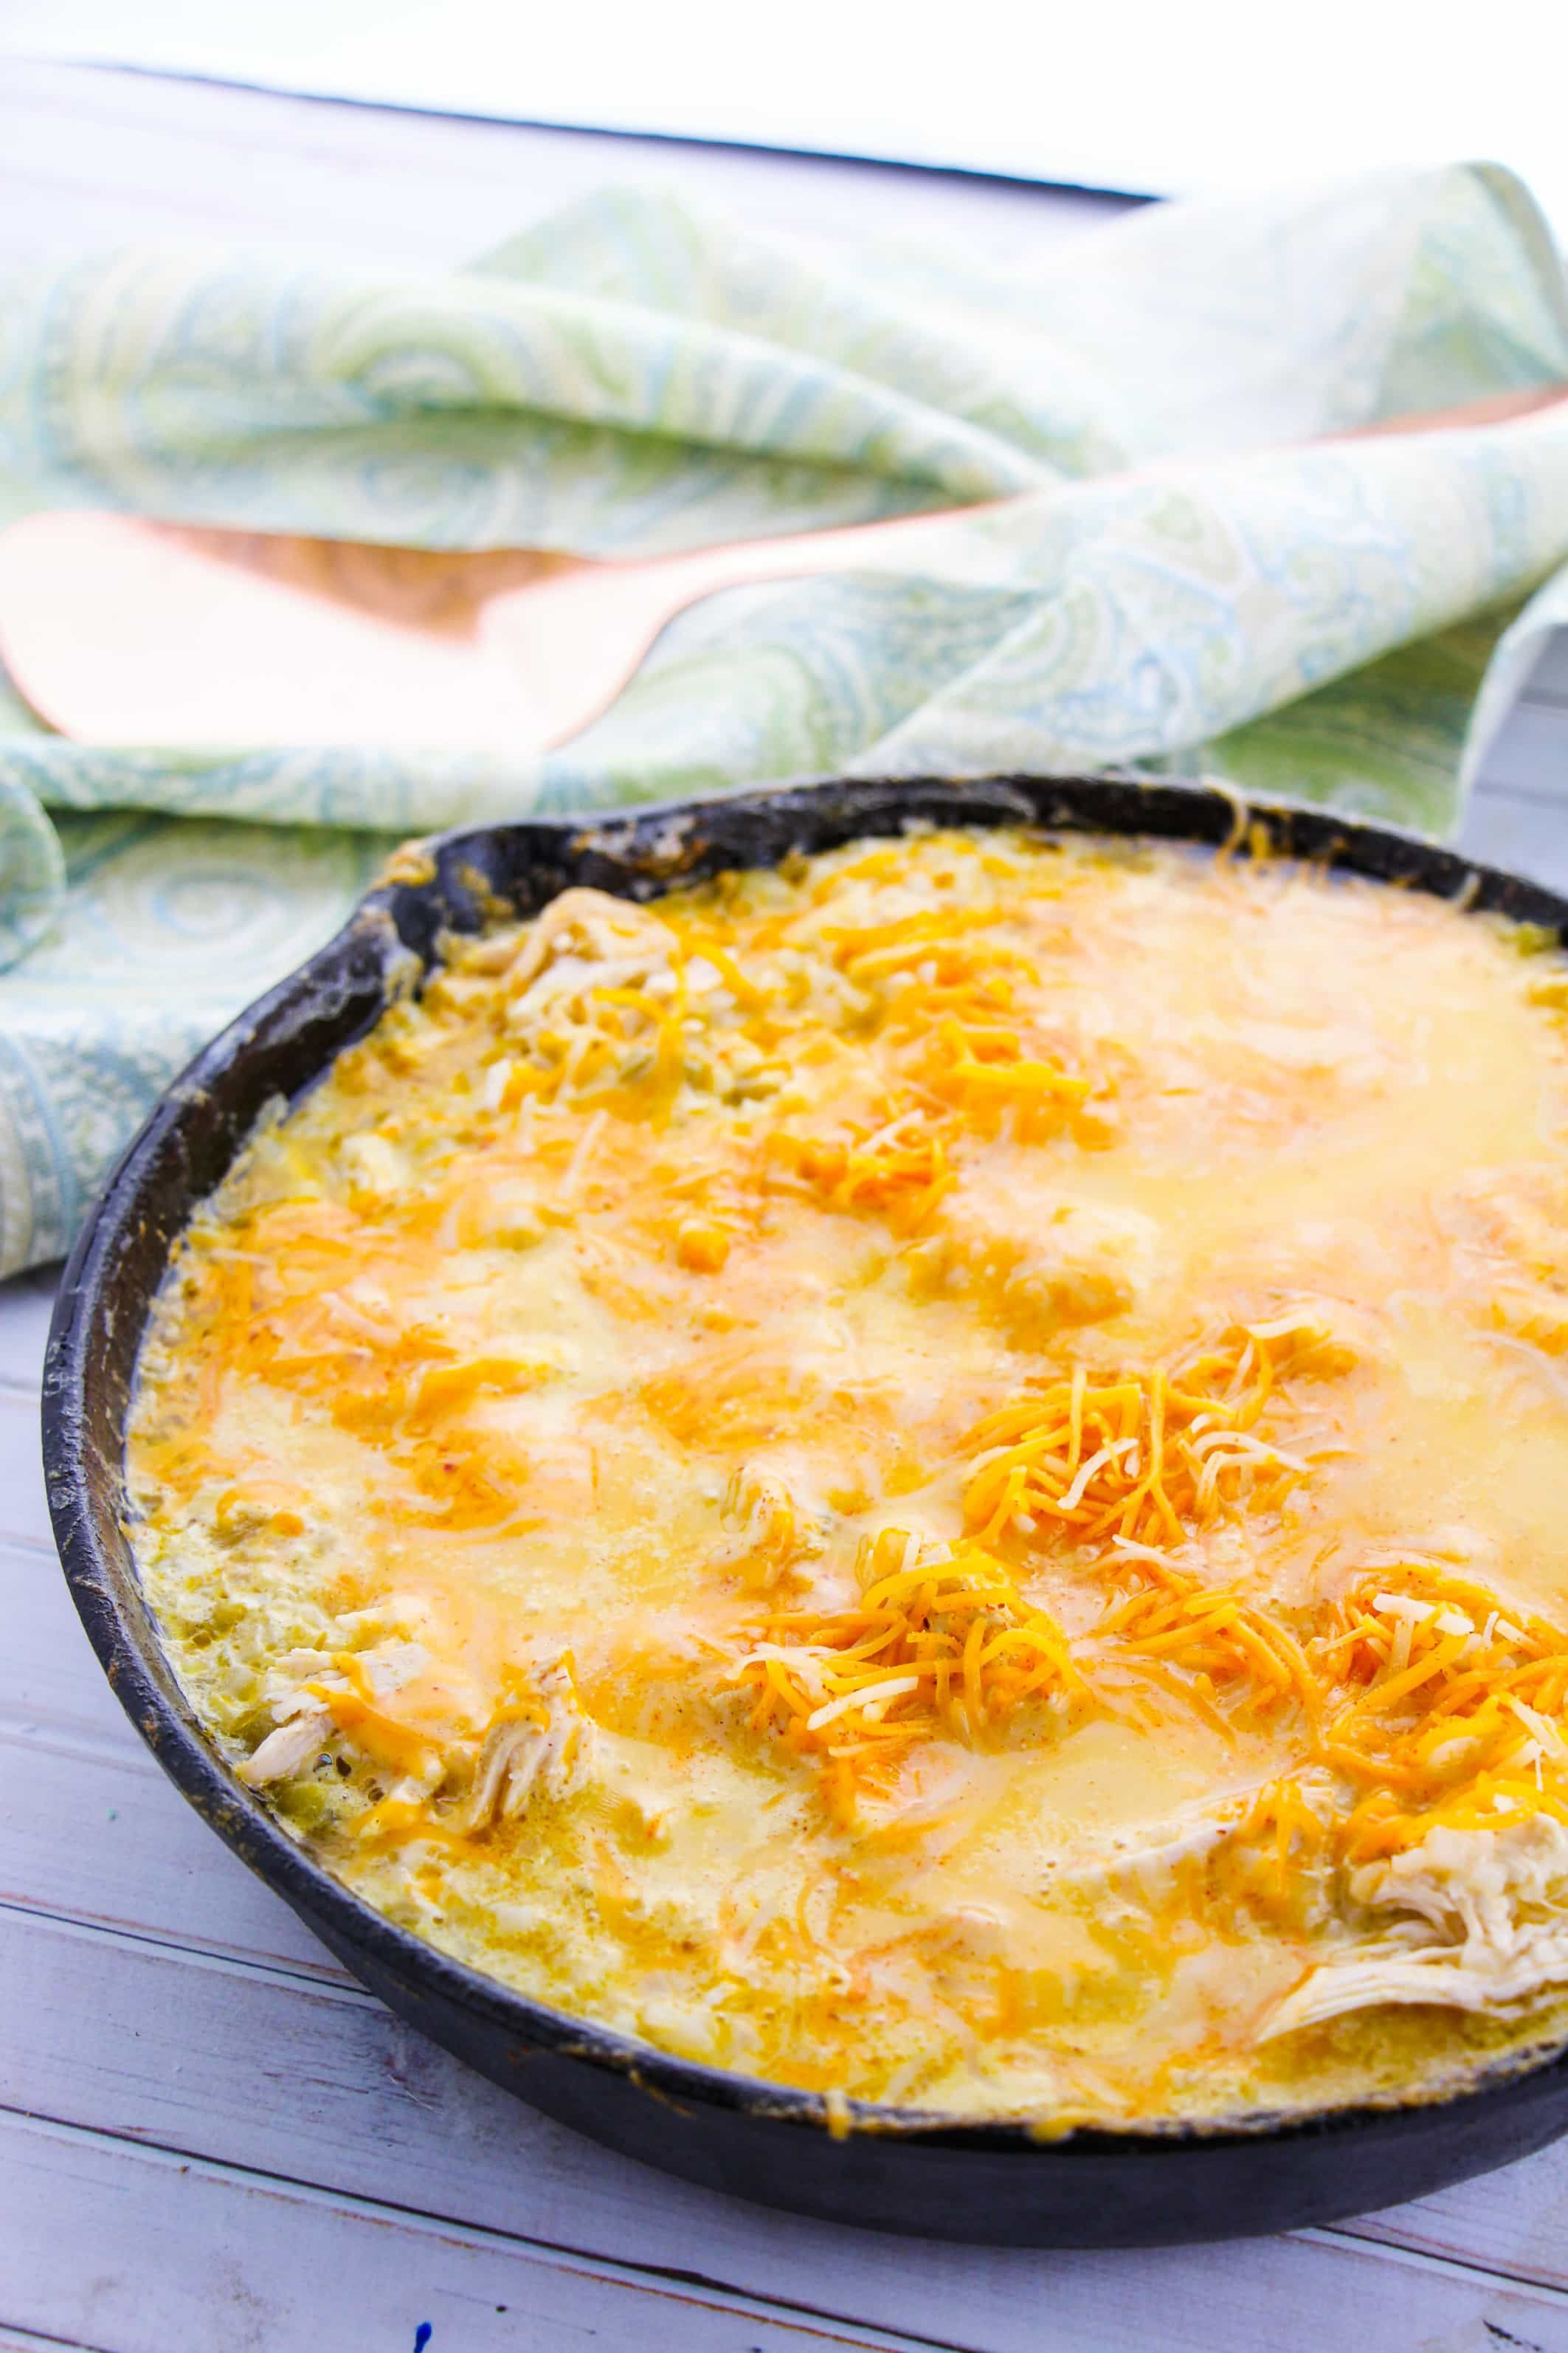 Mexican Recipes Like This Sour Cream Chicken Enchiladas Recipe Are So Easy To Convert To Low Carb Remove Th In 2020 Sour Cream Chicken Enchiladas Mexican Food Recipes